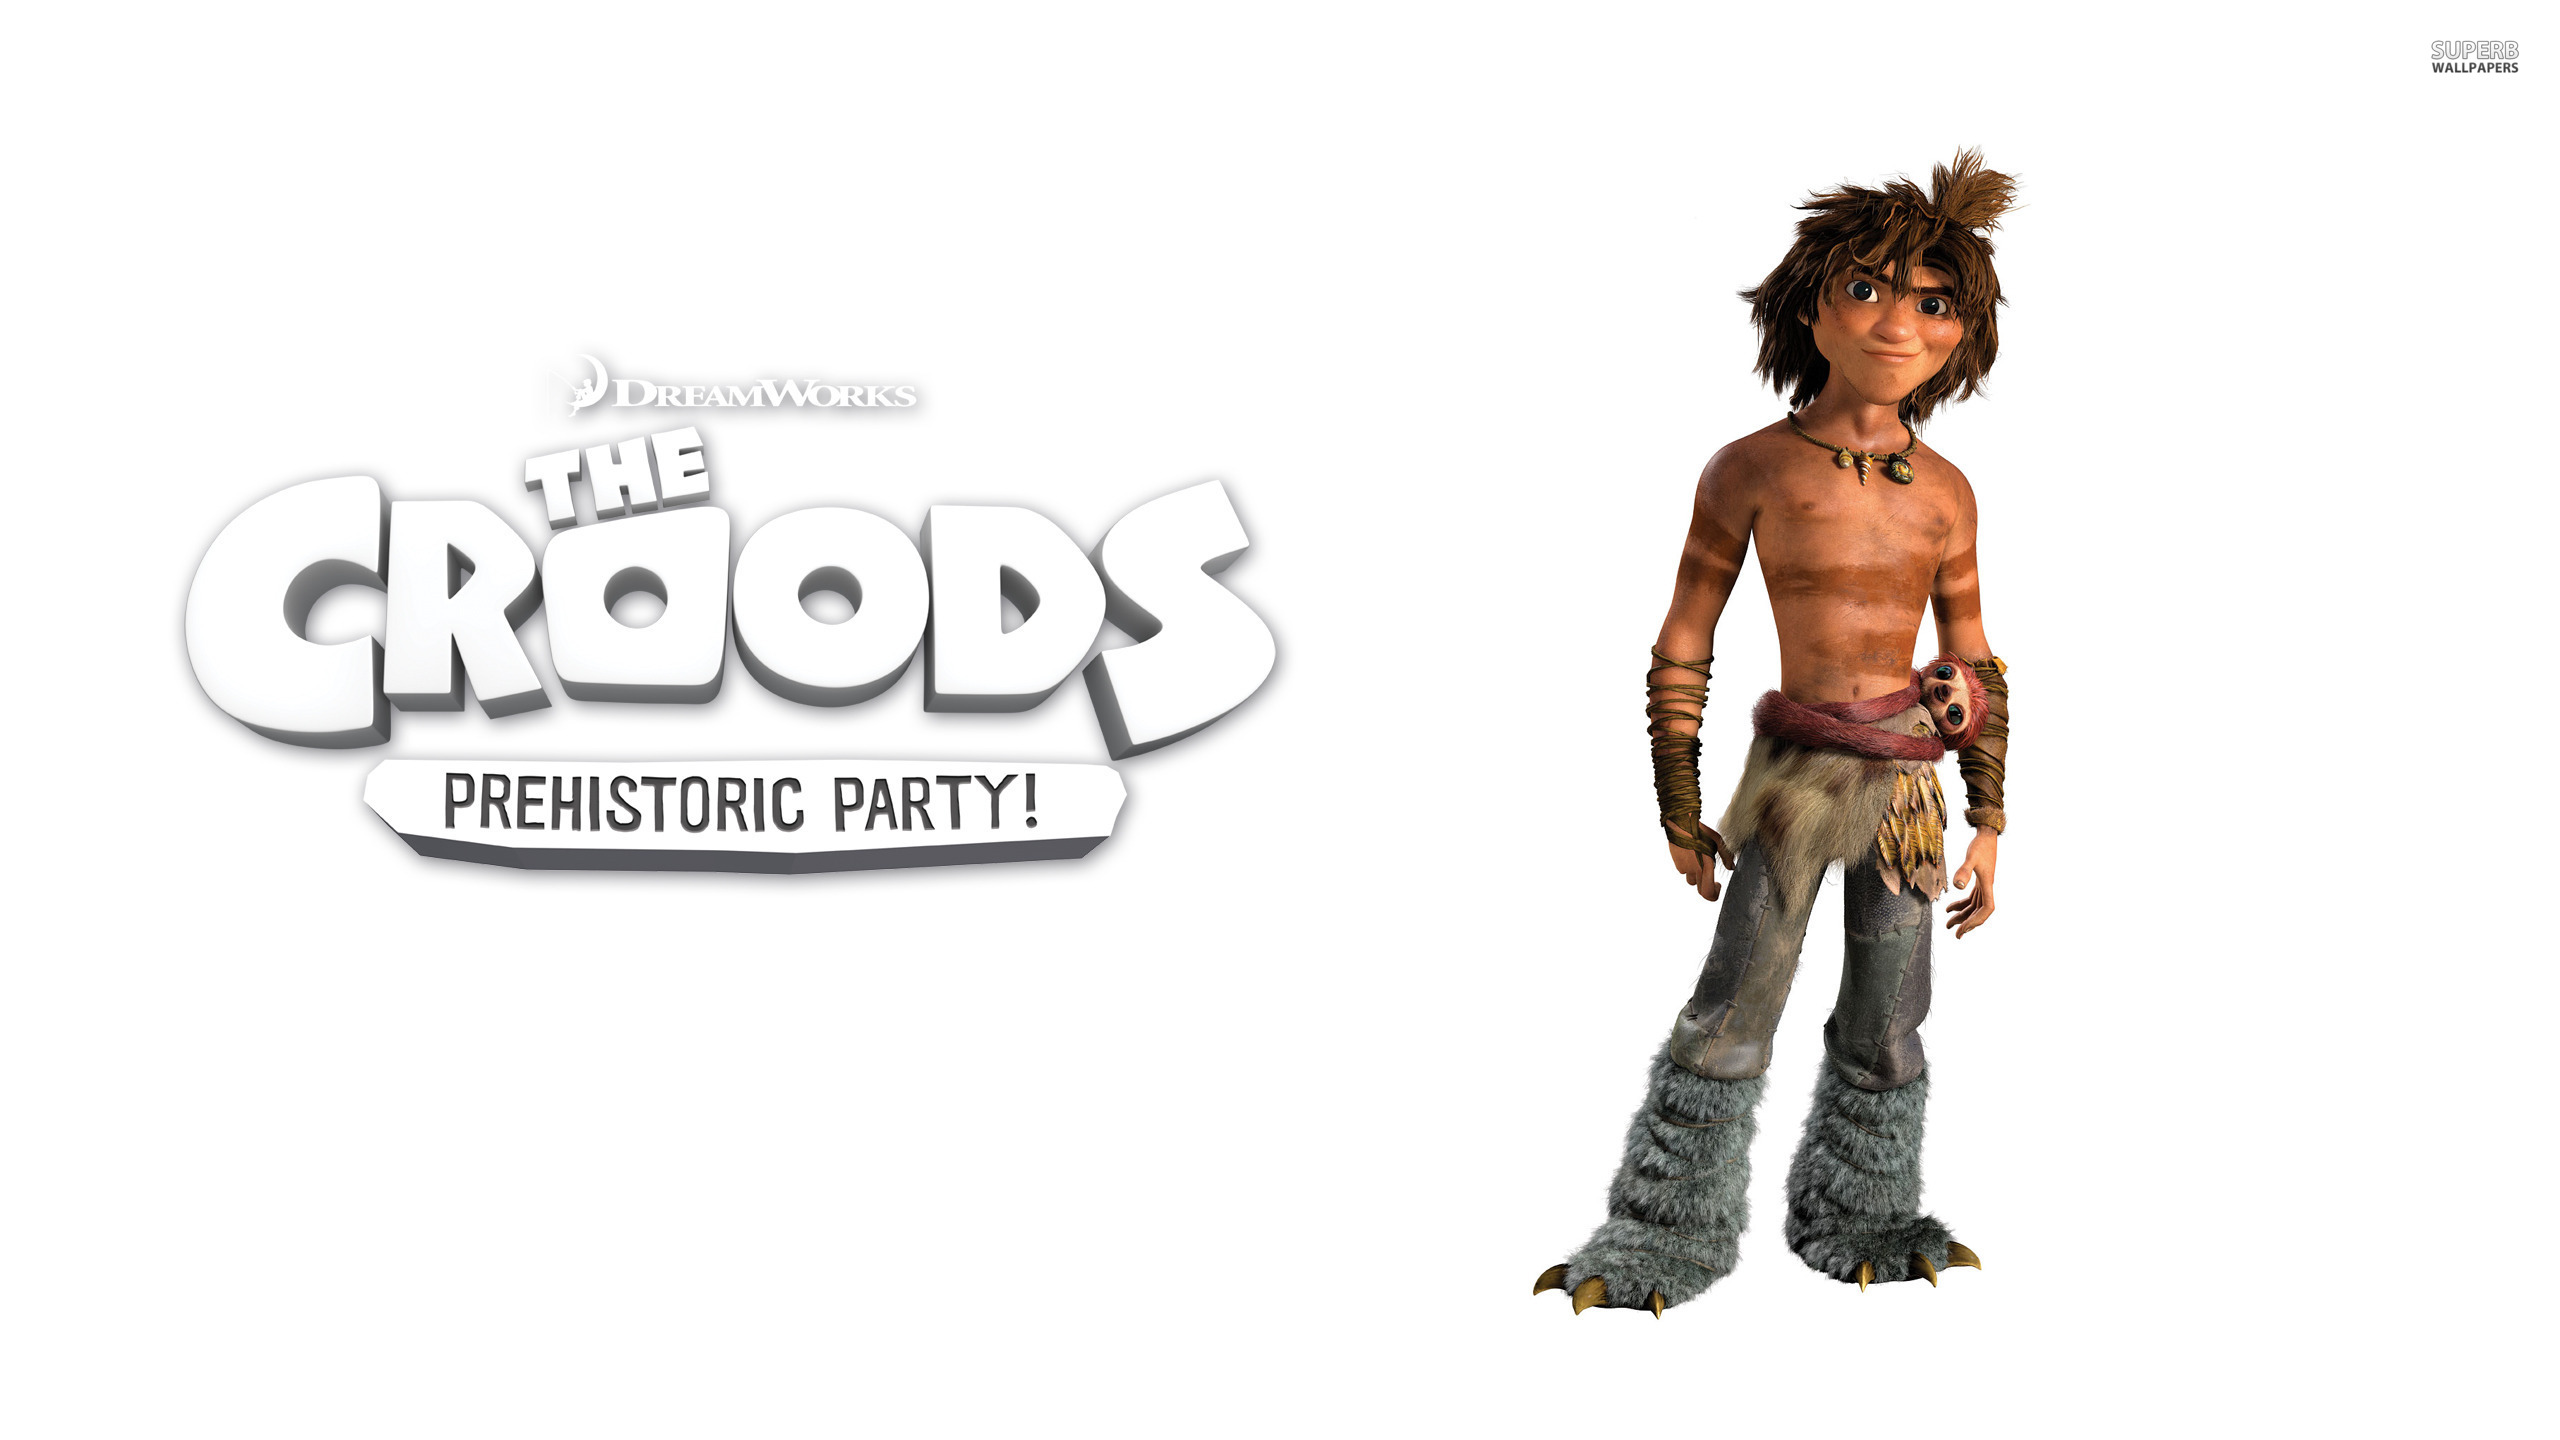 the croods full hd wallpaper and background image | 2560x1440 | id